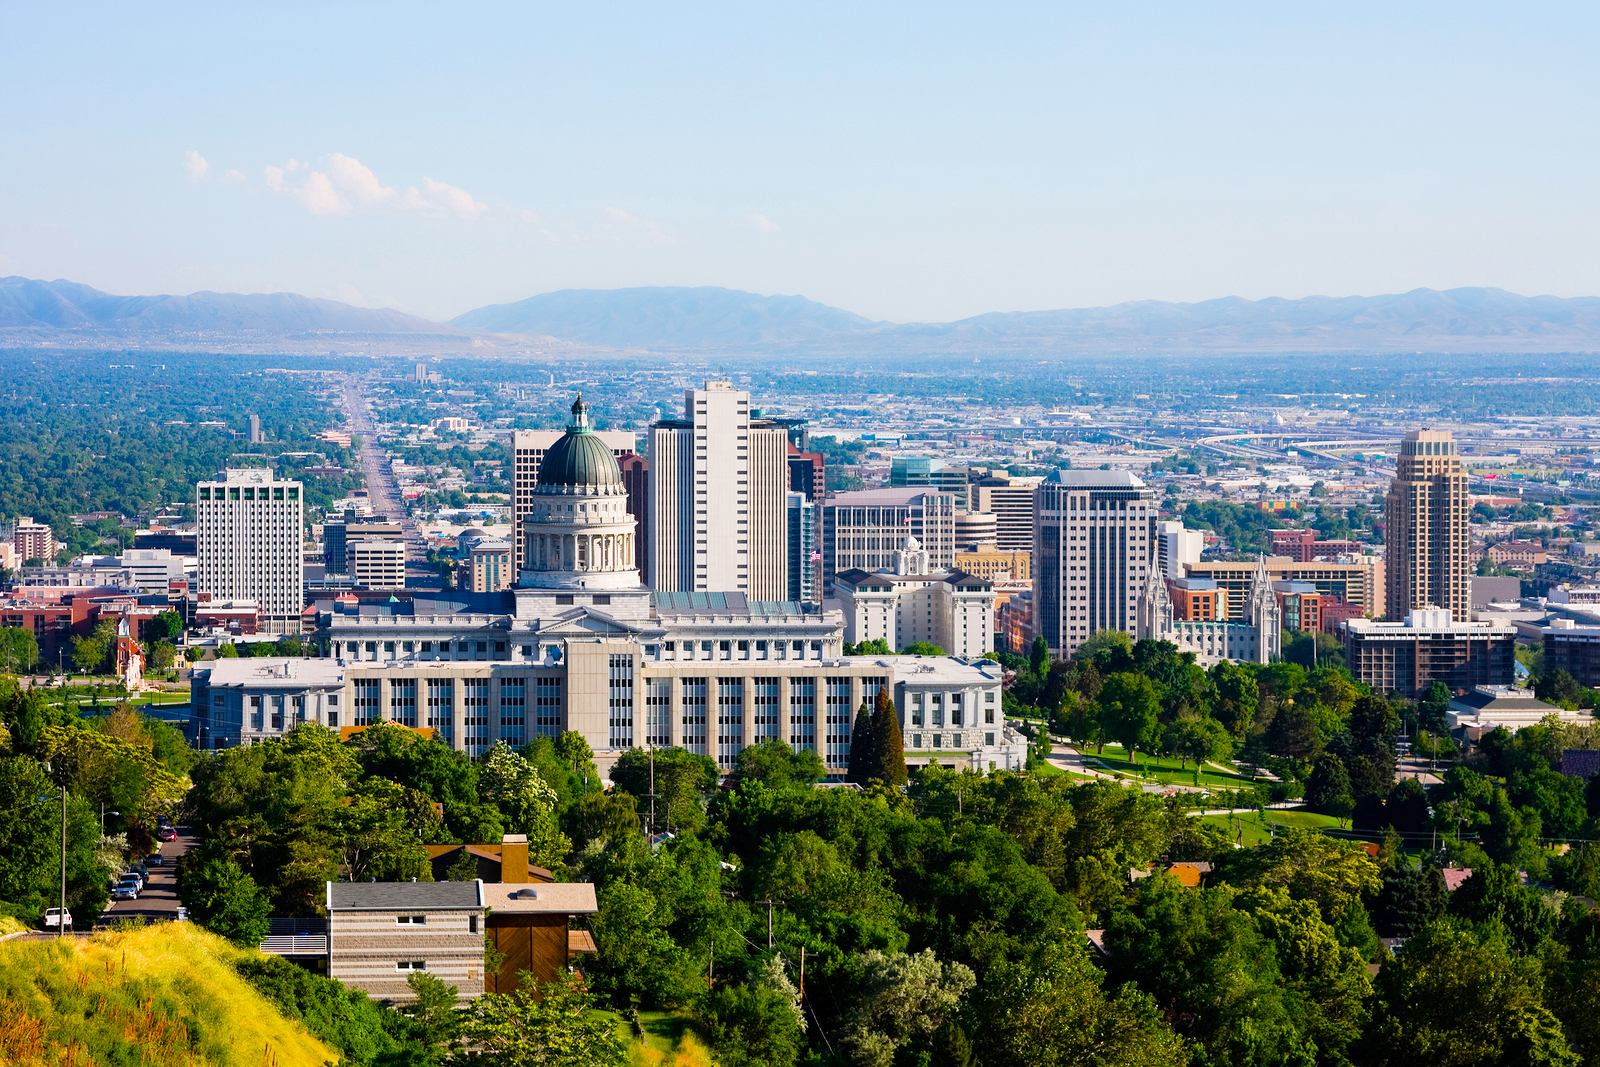 The Salt Lake City Area is just one great real-estate market perfect for active adults looking to age in place.